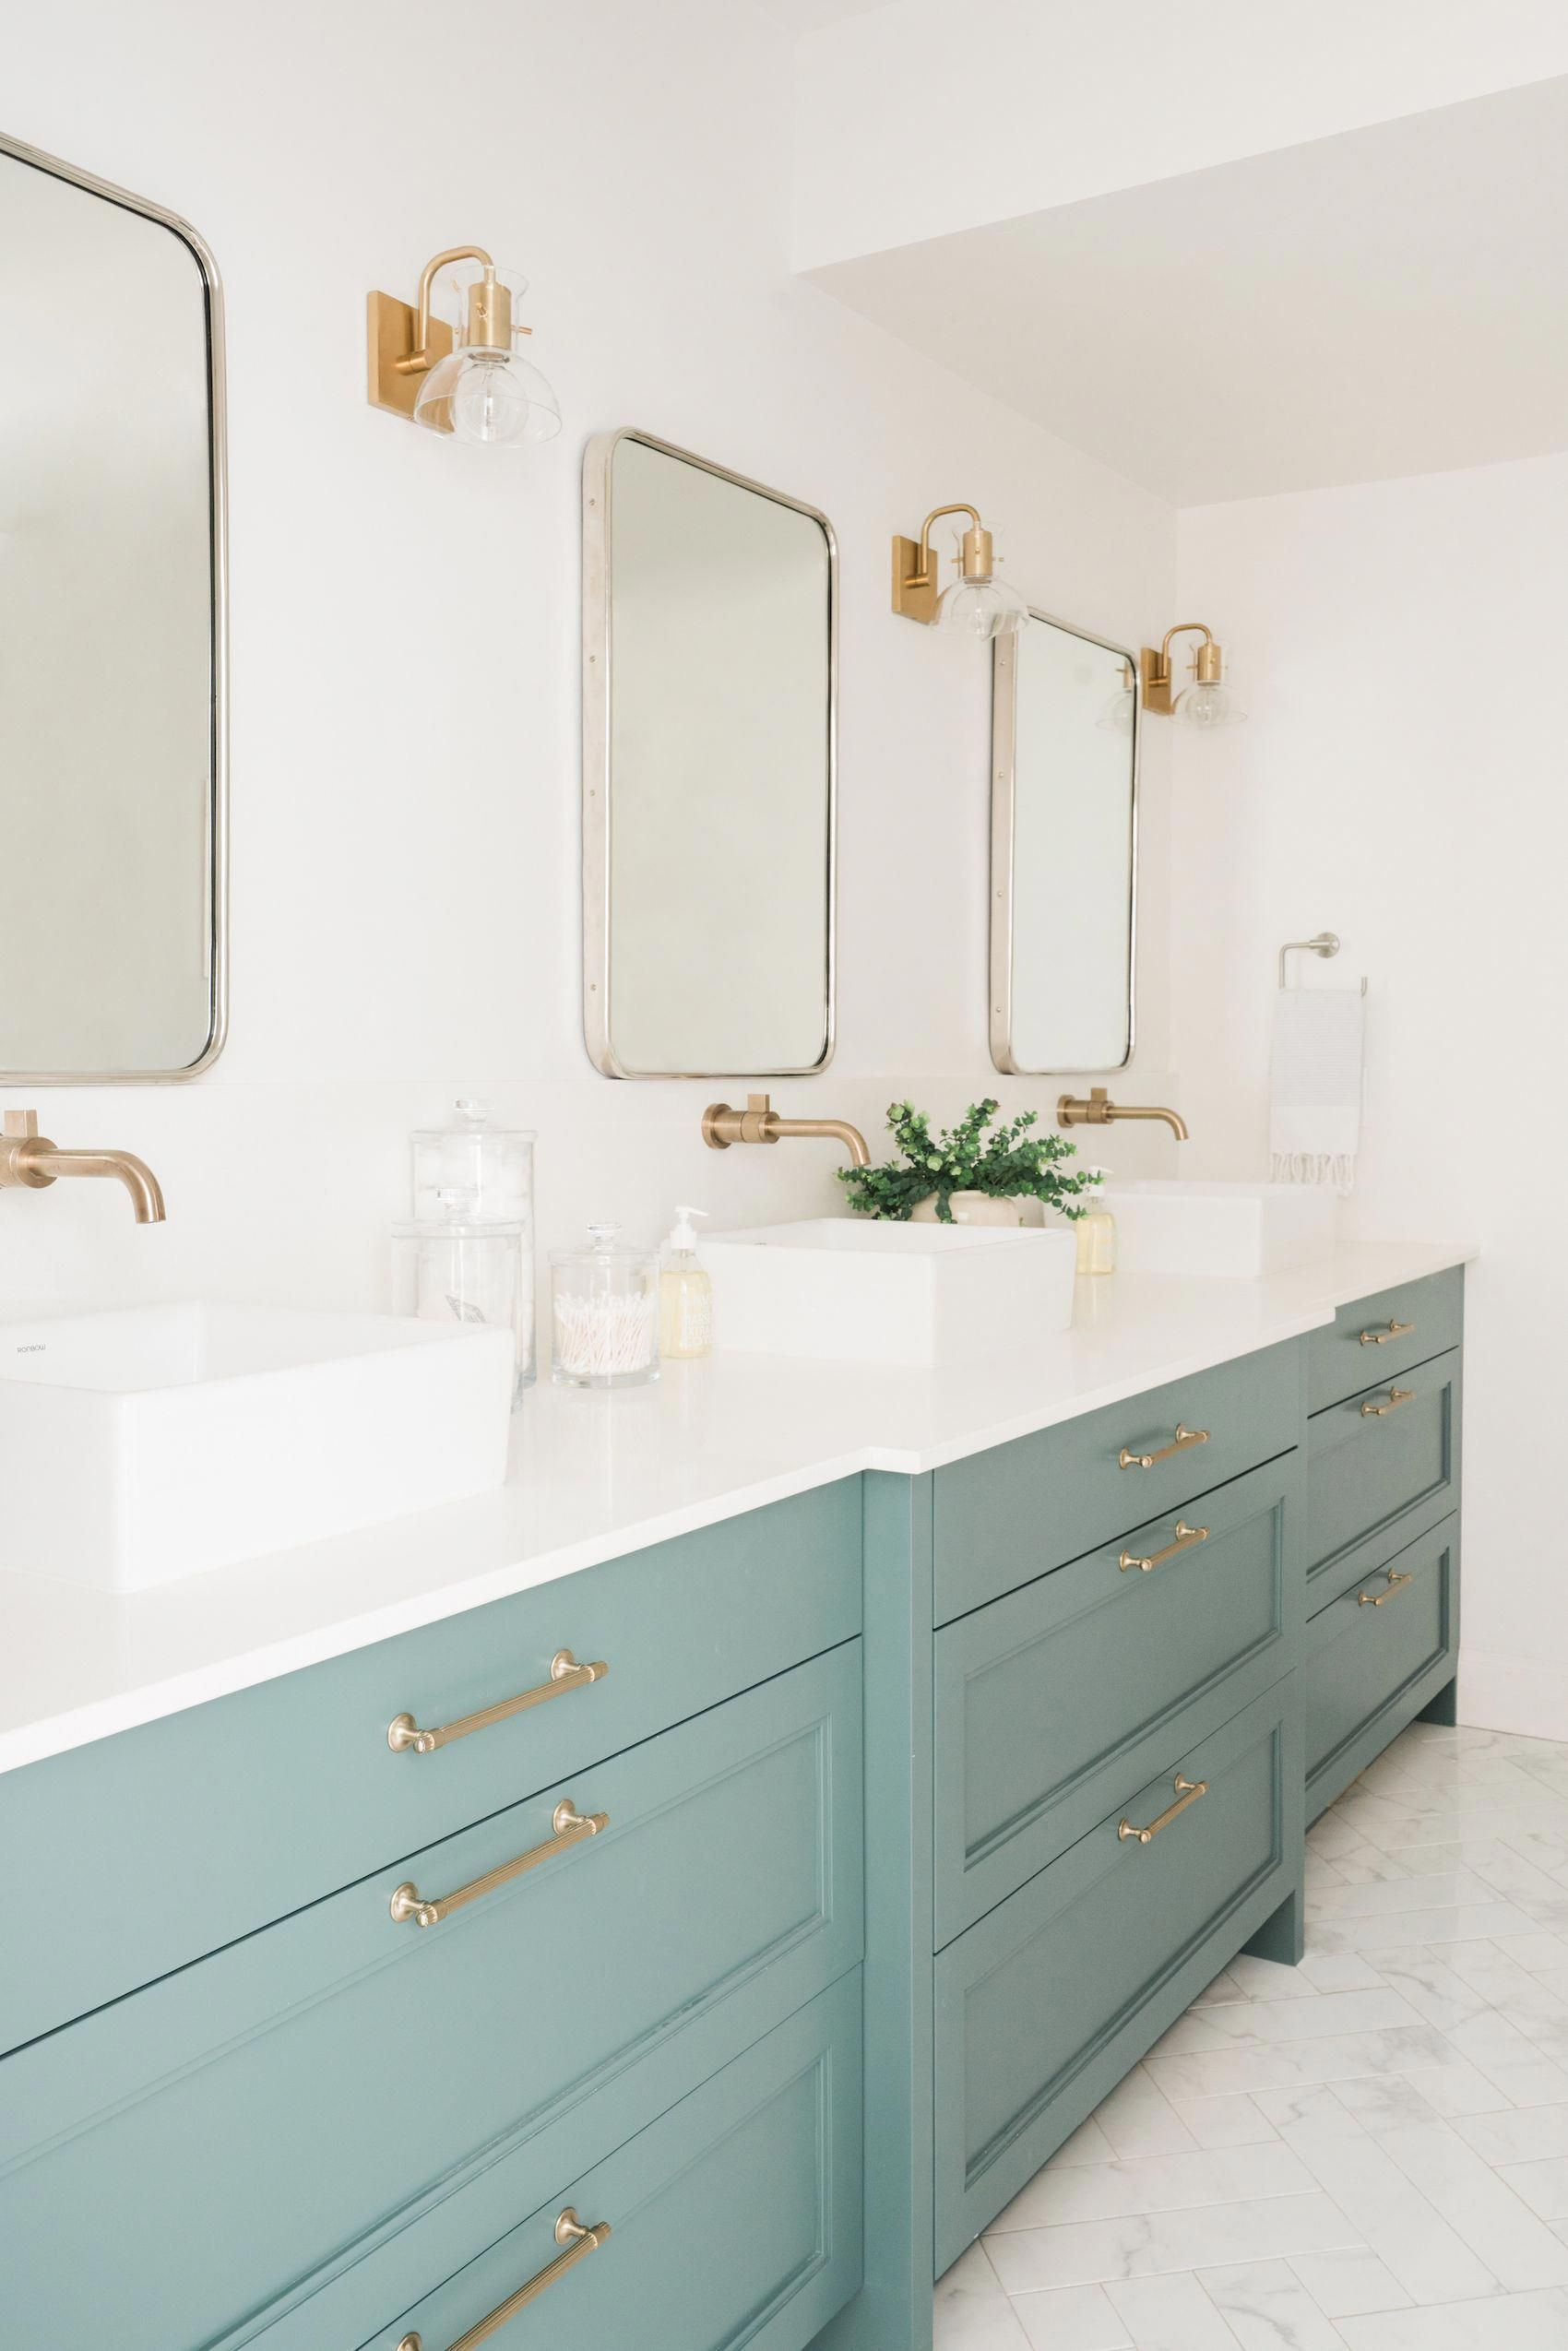 Cabinet Paint Color Is Benjamin Moore Jack Pine Green Bathroom Bathroom Makeover Mint Green Bathrooms